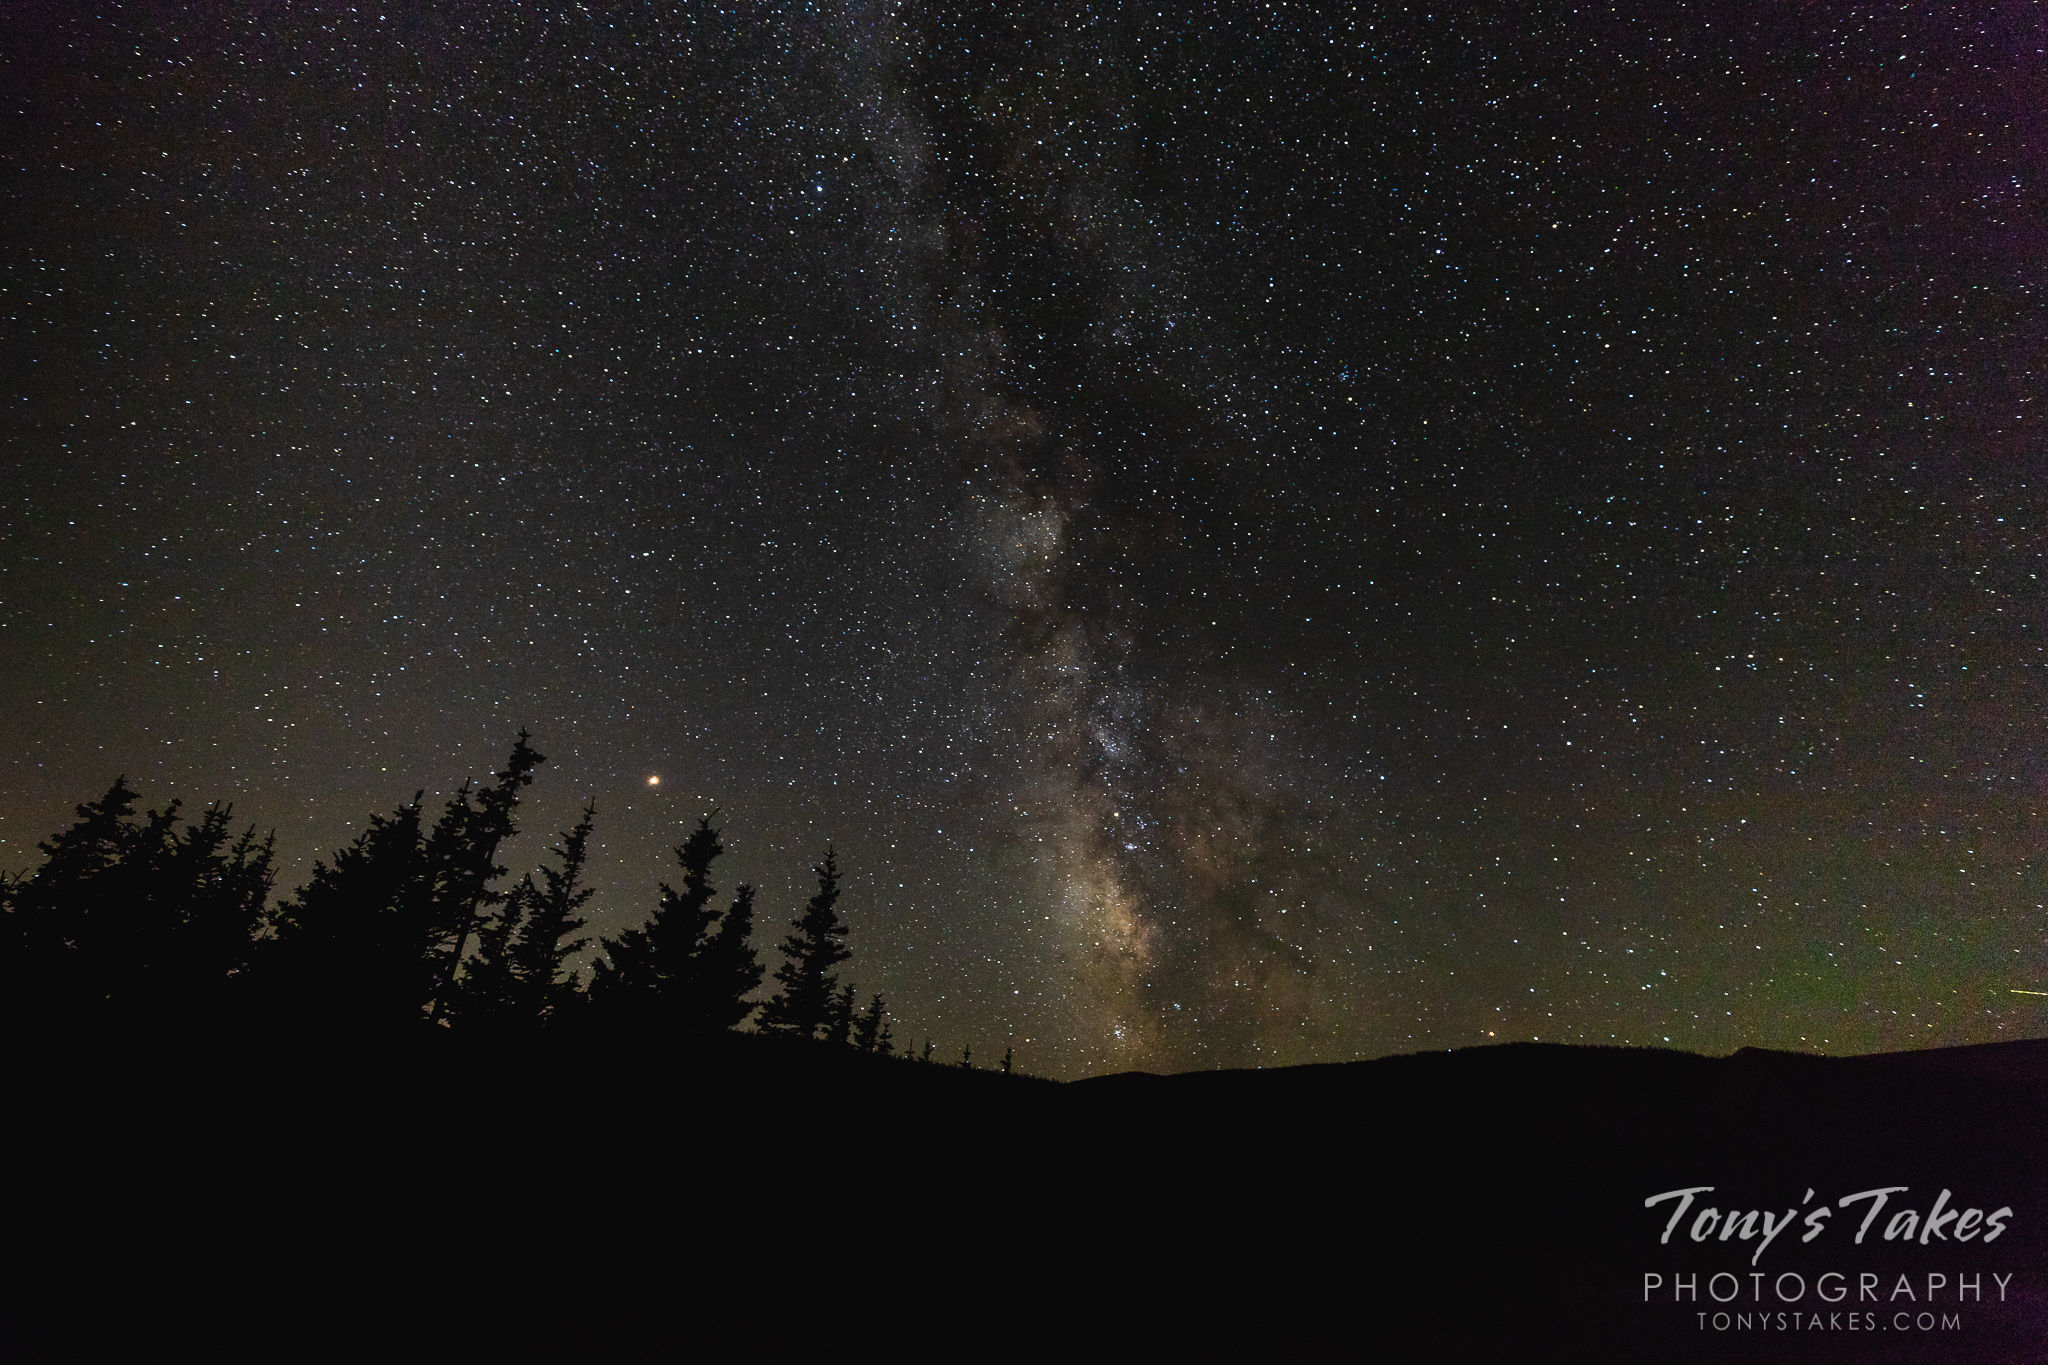 The Milky Way and the planet Mars are seen during the summer in Colorado's high country. (© Tony's Takes)